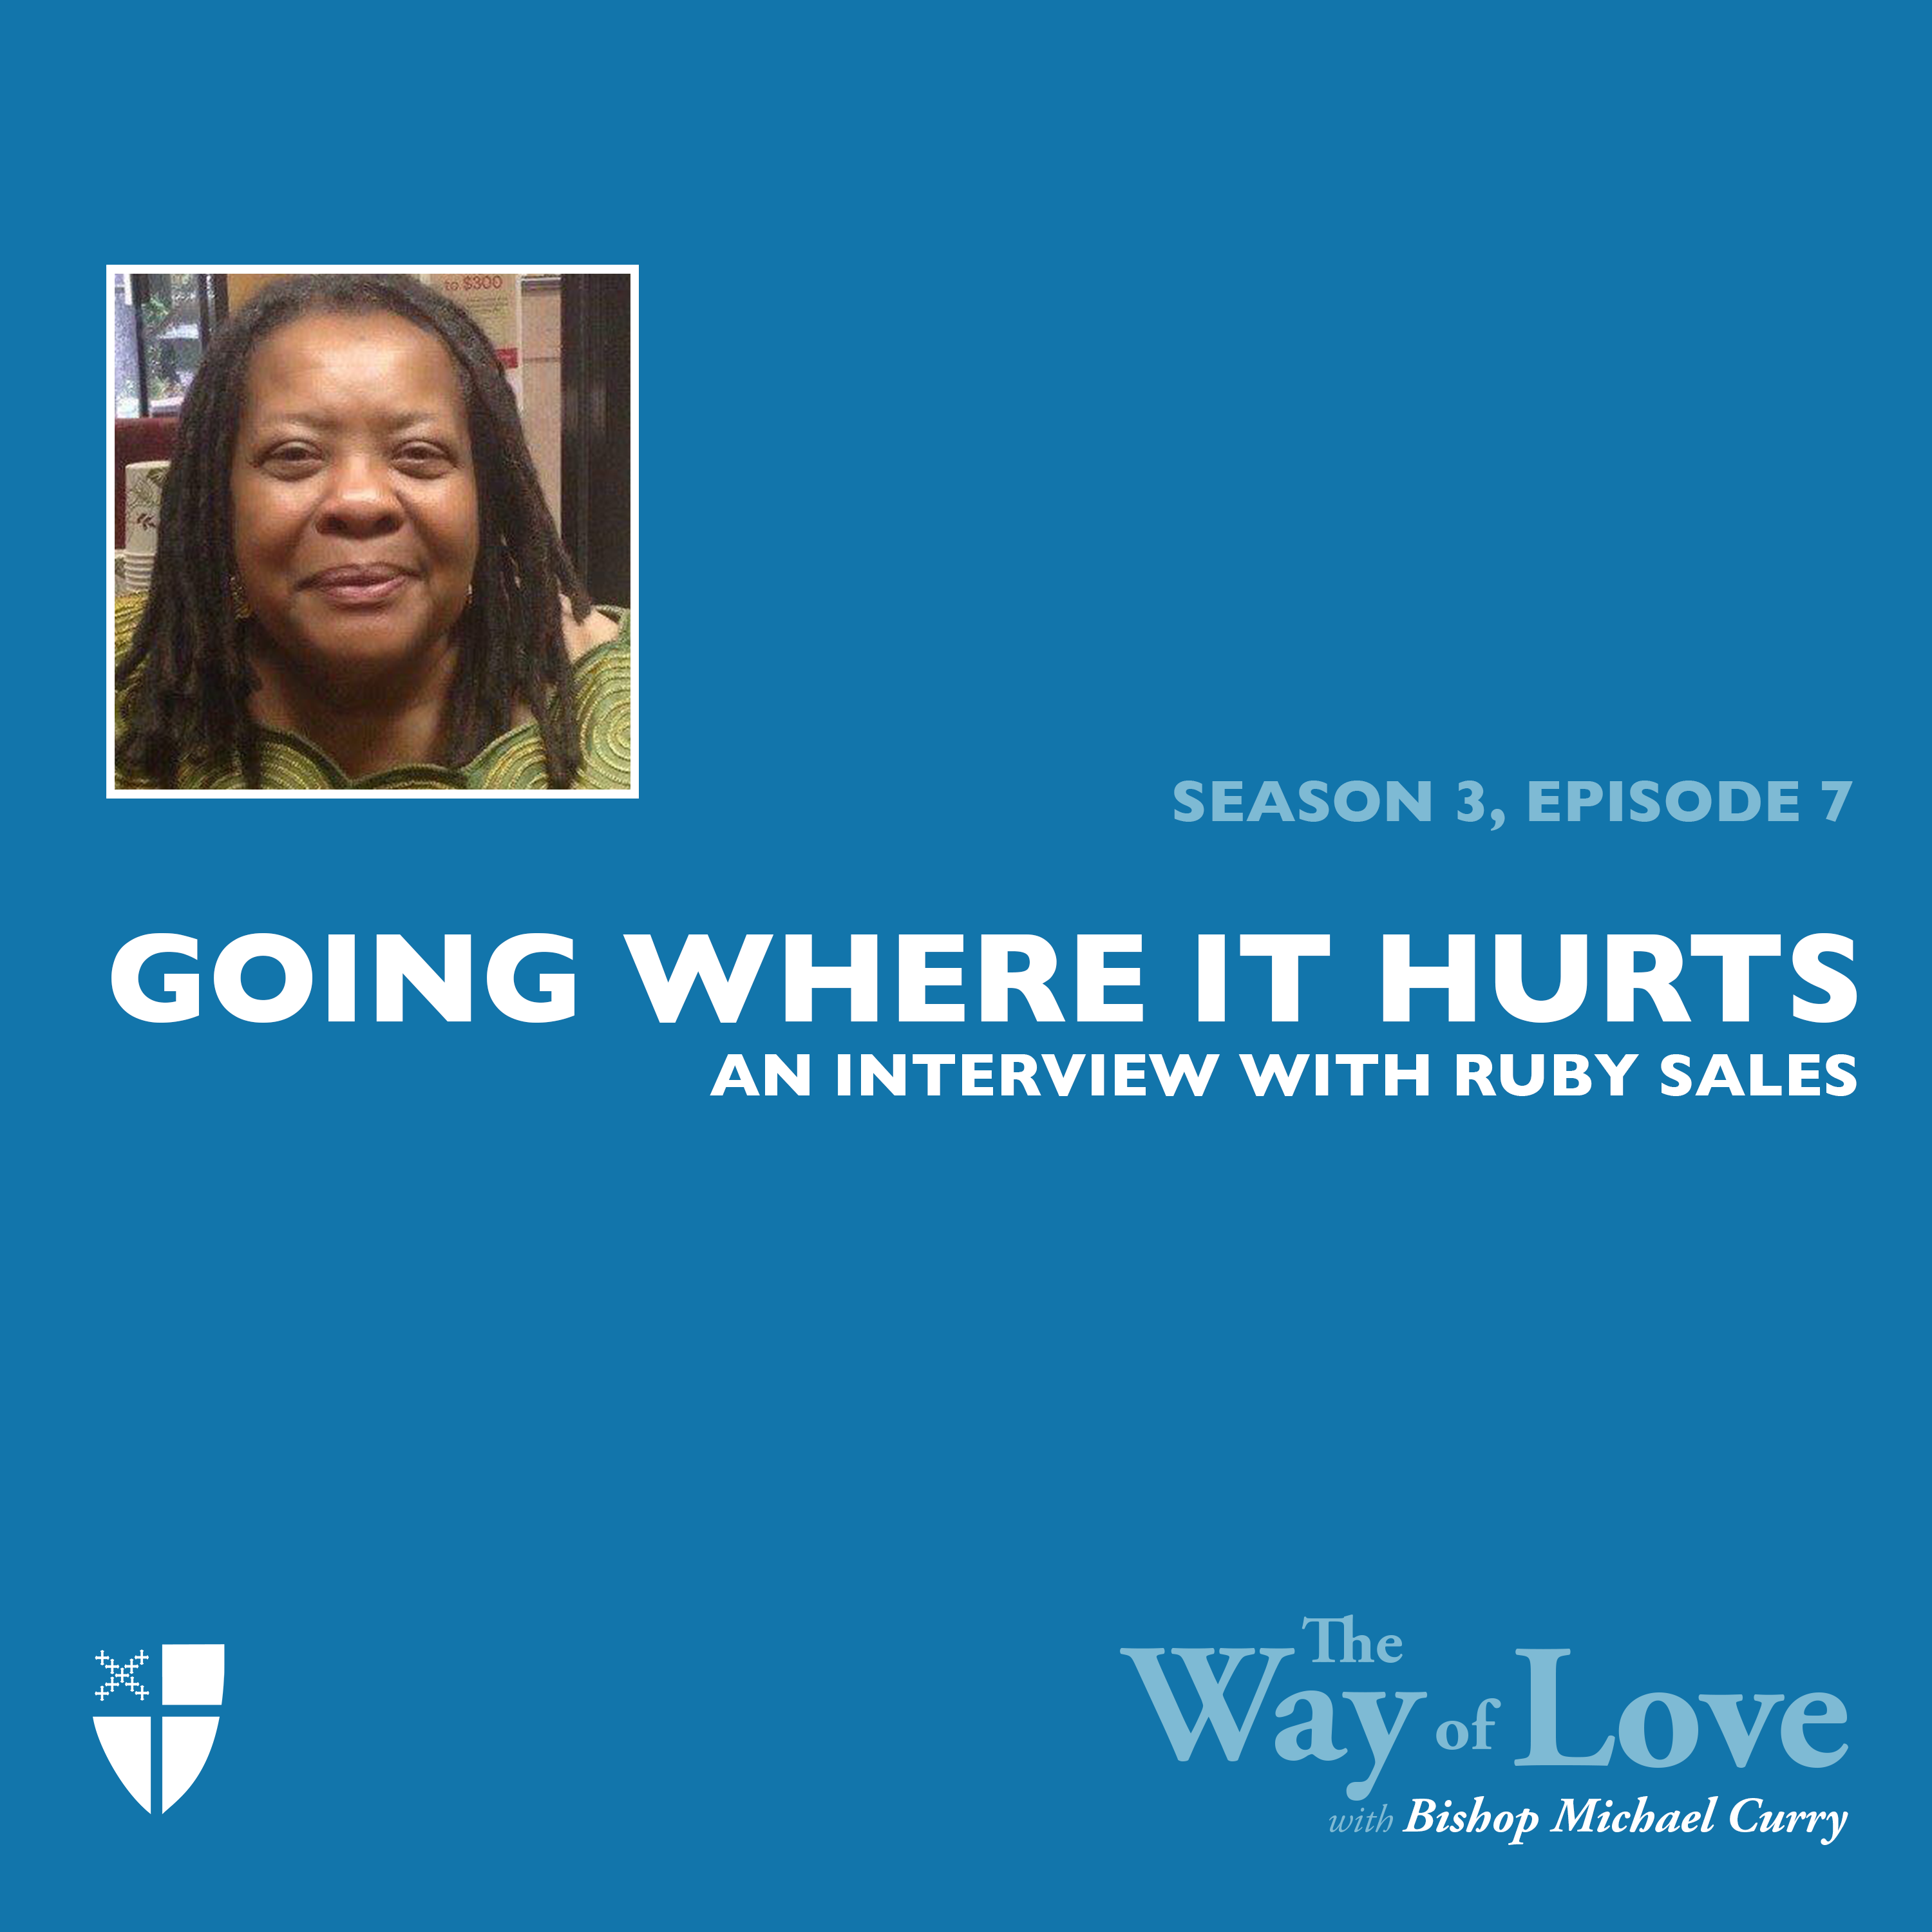 Going Where It Hurts with Ruby Sales